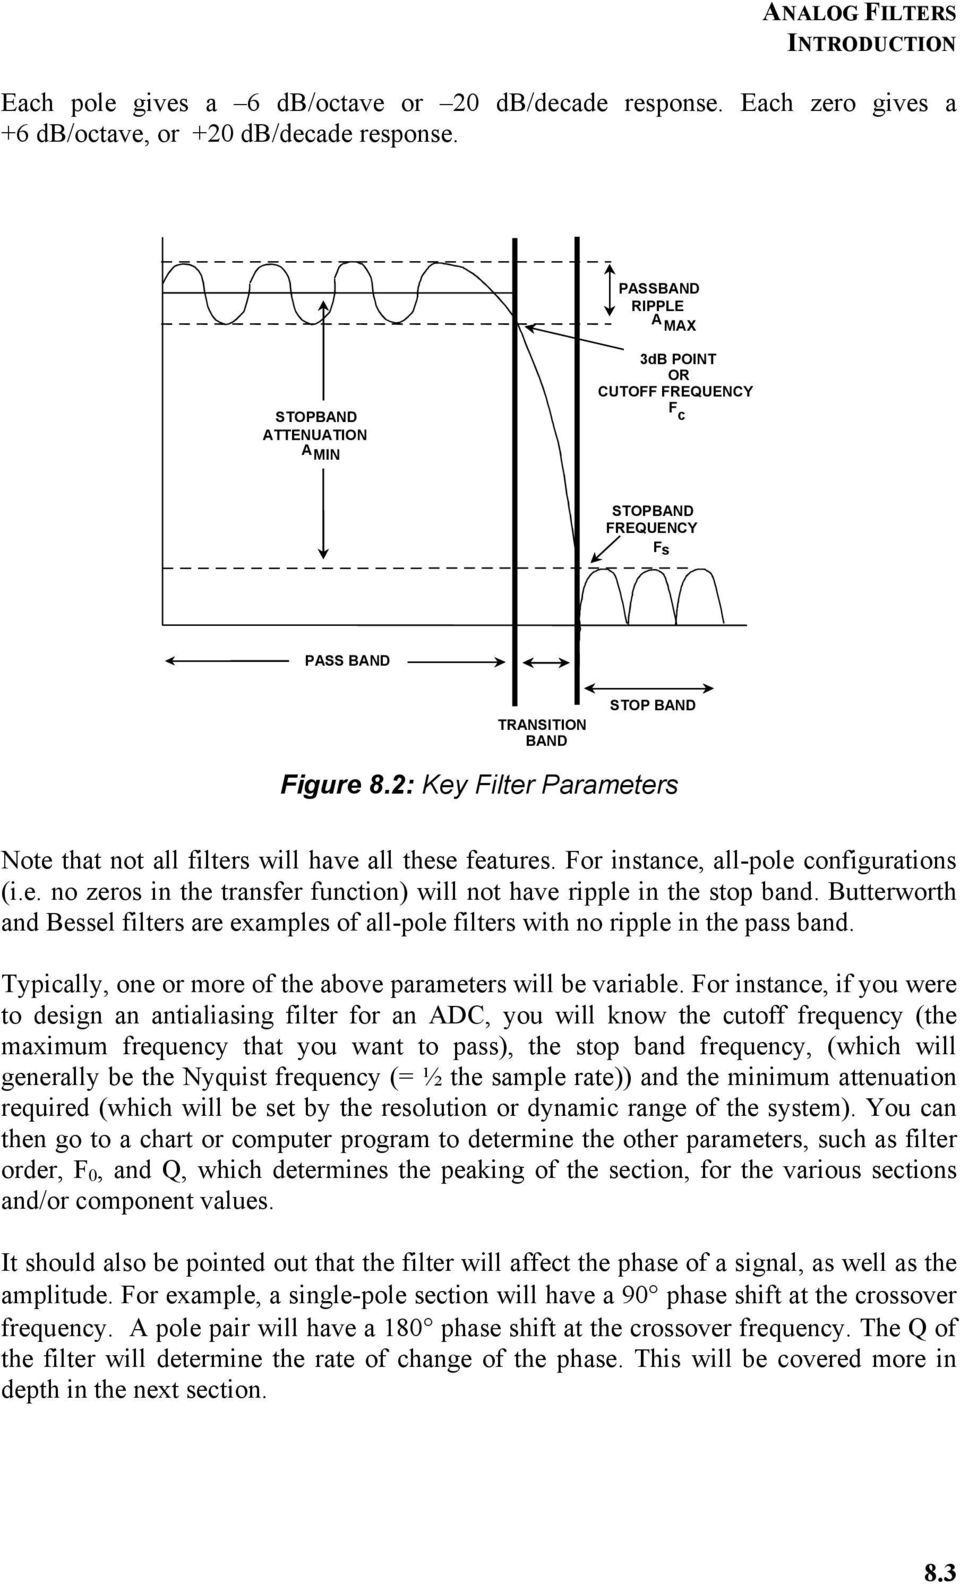 Chapter 8 Analog Filters Pdf Bessel Filter Frequency Response On Electronic Schematic 2 Key Parameters Note That Not All Will Have These Features